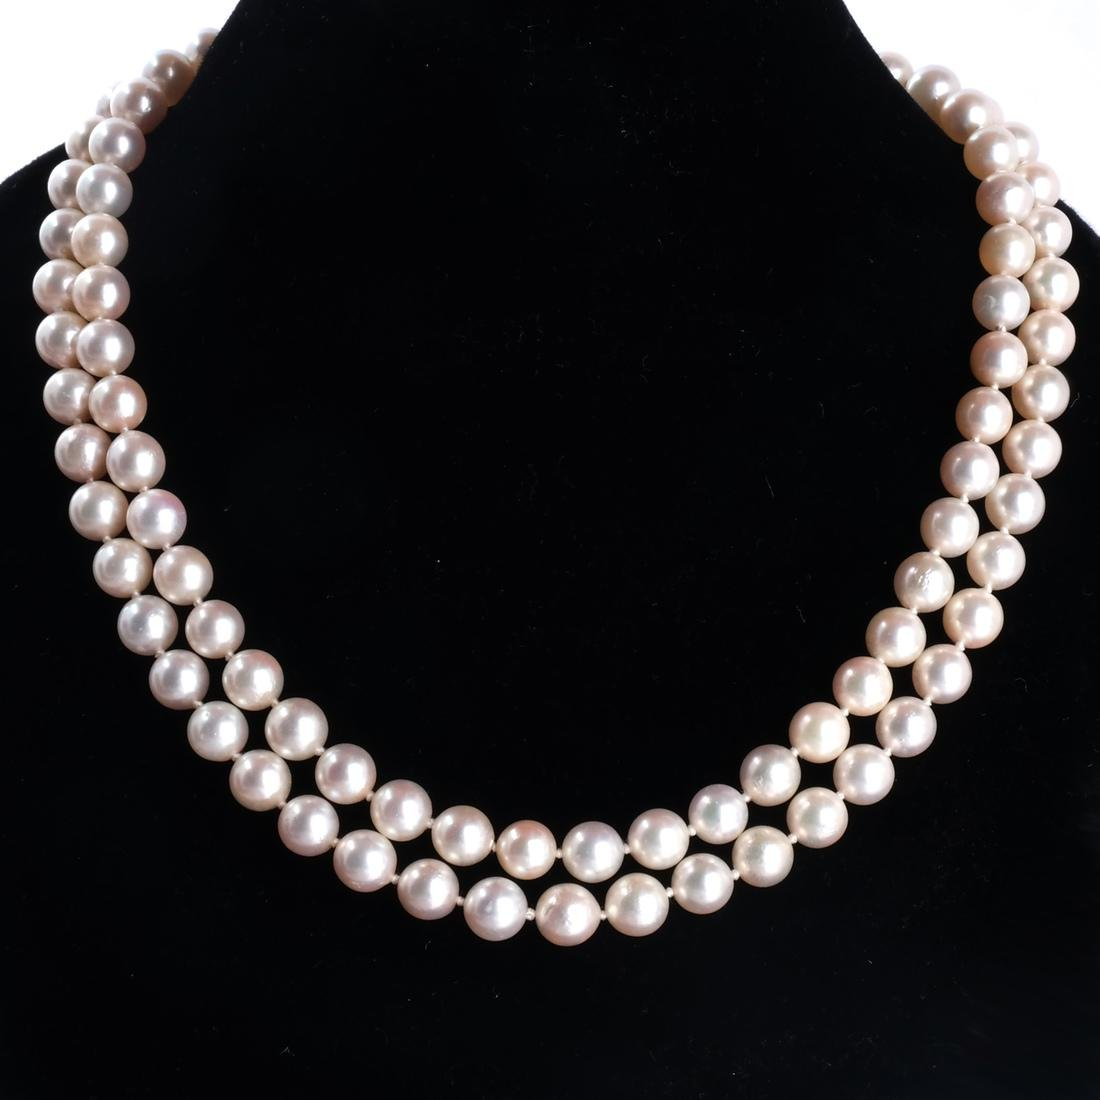 Two-Strand Pearl Necklace, 18k Clasp